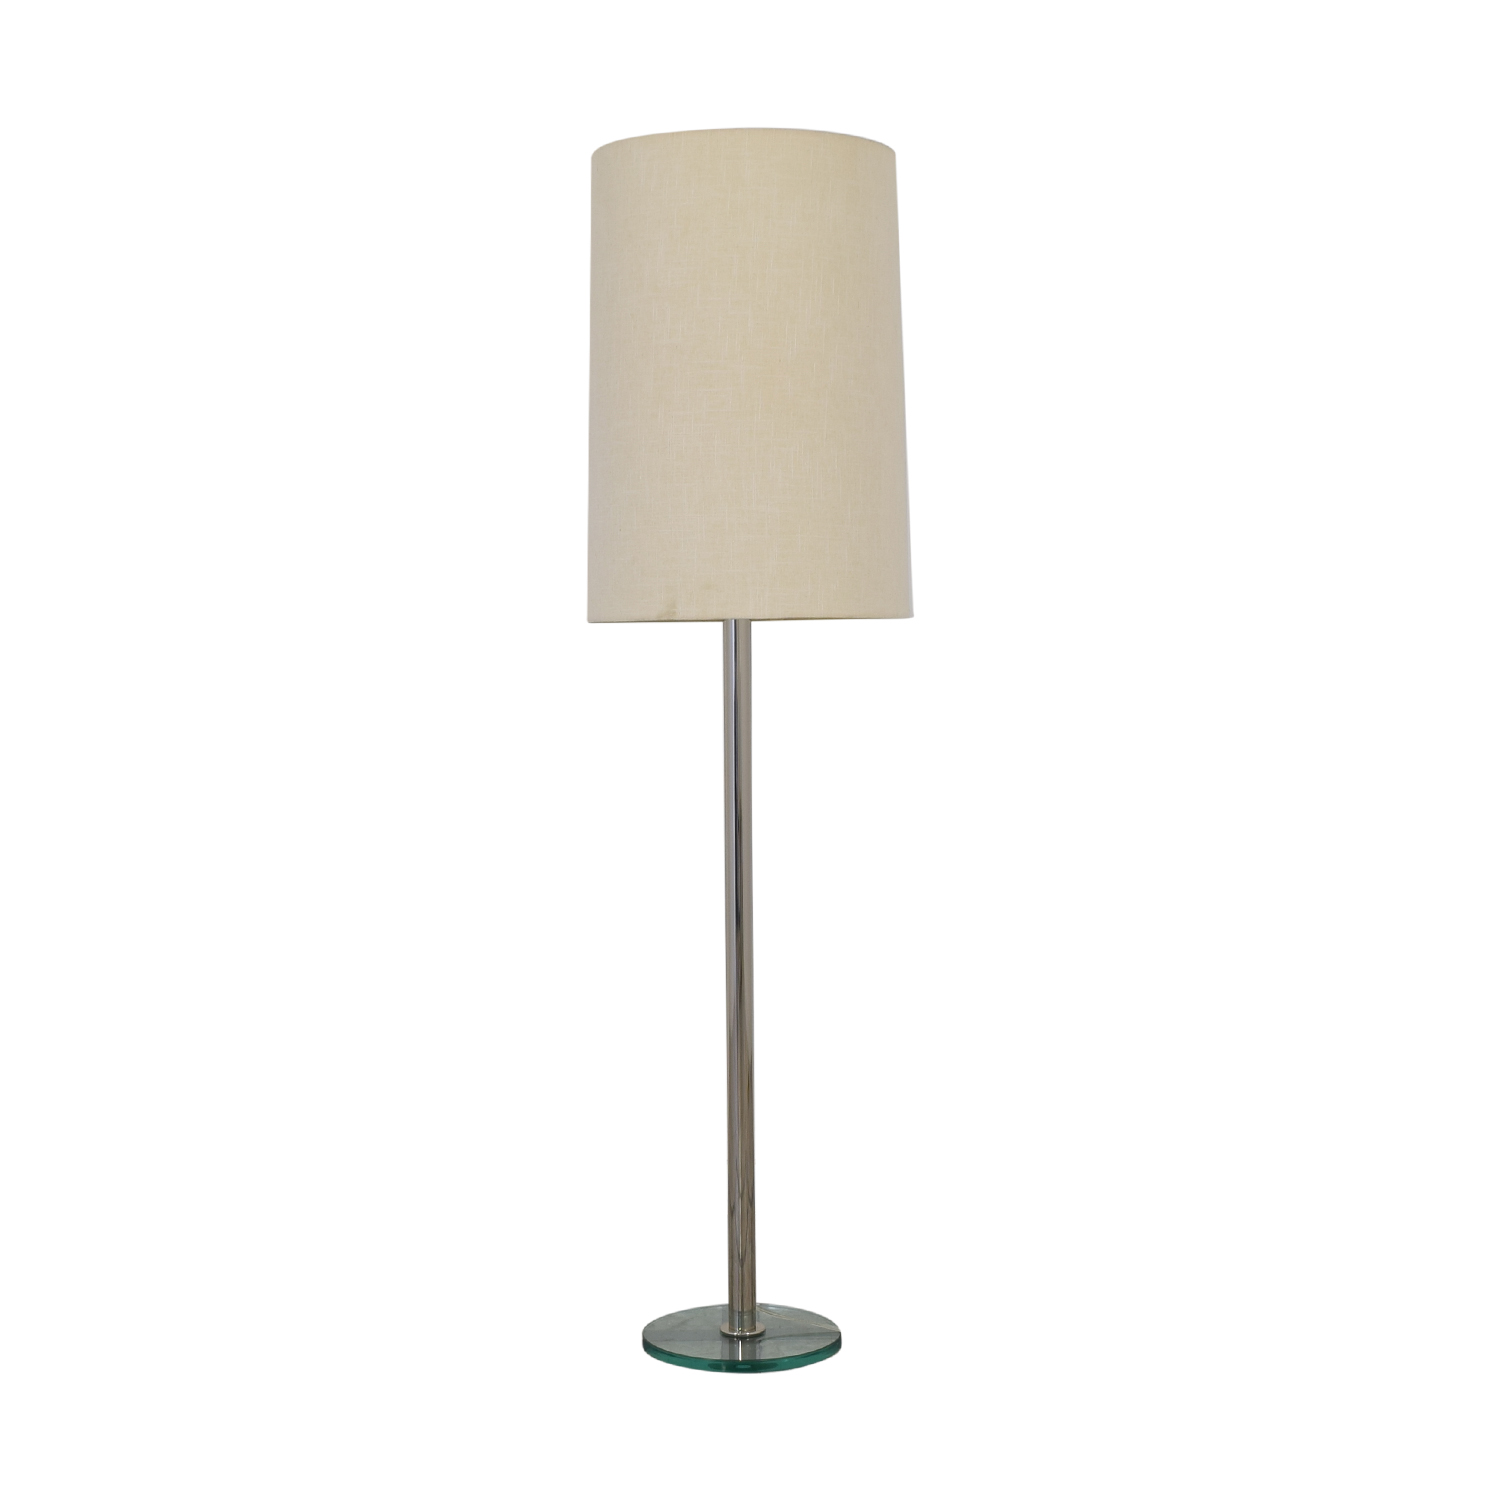 Crate & Barrel Crate & Barrel Claire Floor Lamp nyc